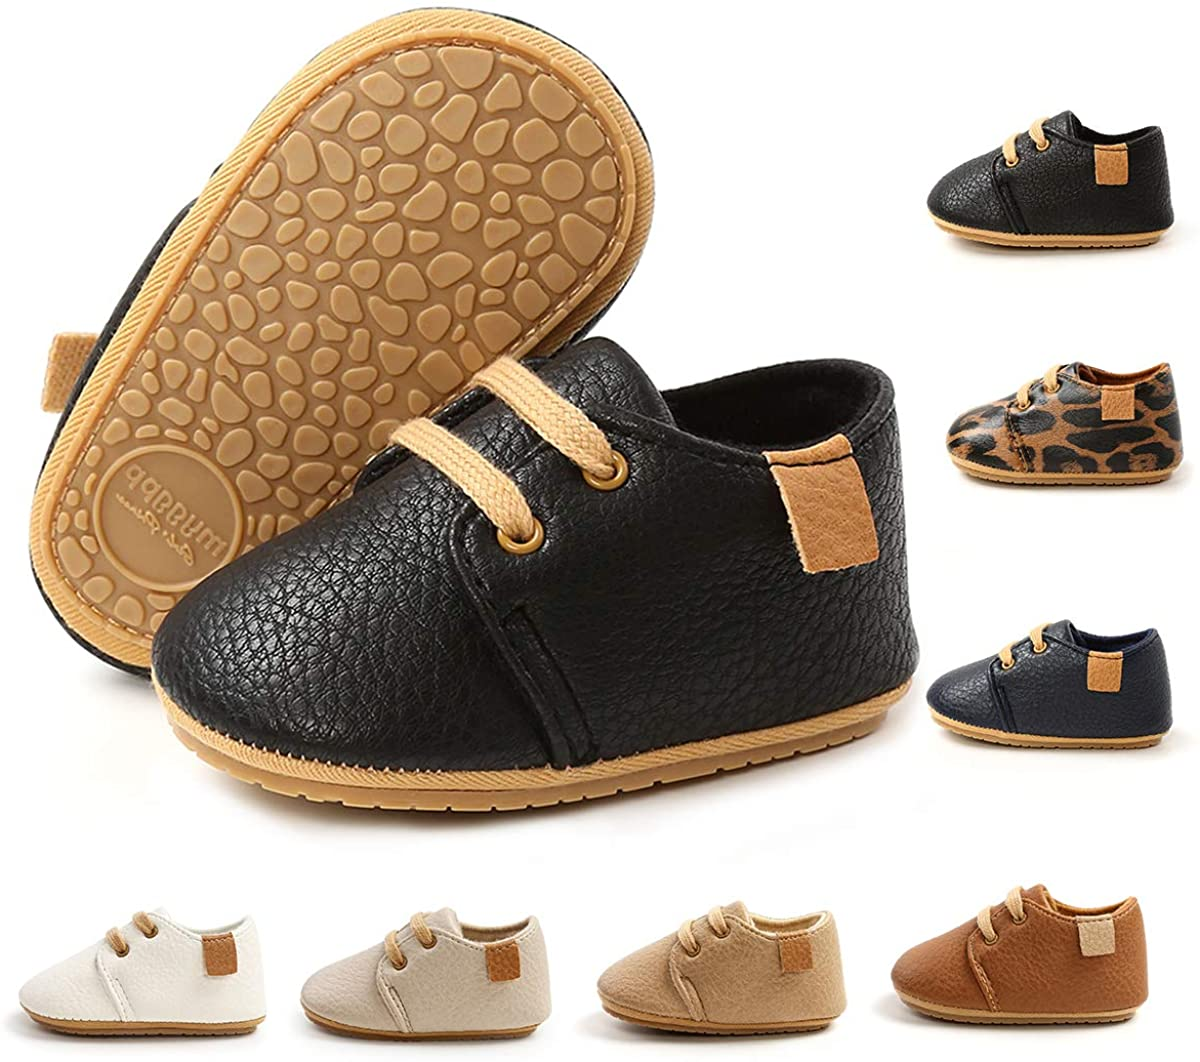 BEBARFER Toddler Baby Boys Girls Shoes Infant Moccasins Anti-Slip Sole Newborn Oxford Loafers Sneakers Wedding Uniform Dress Shoes First Walking Crib Shoes